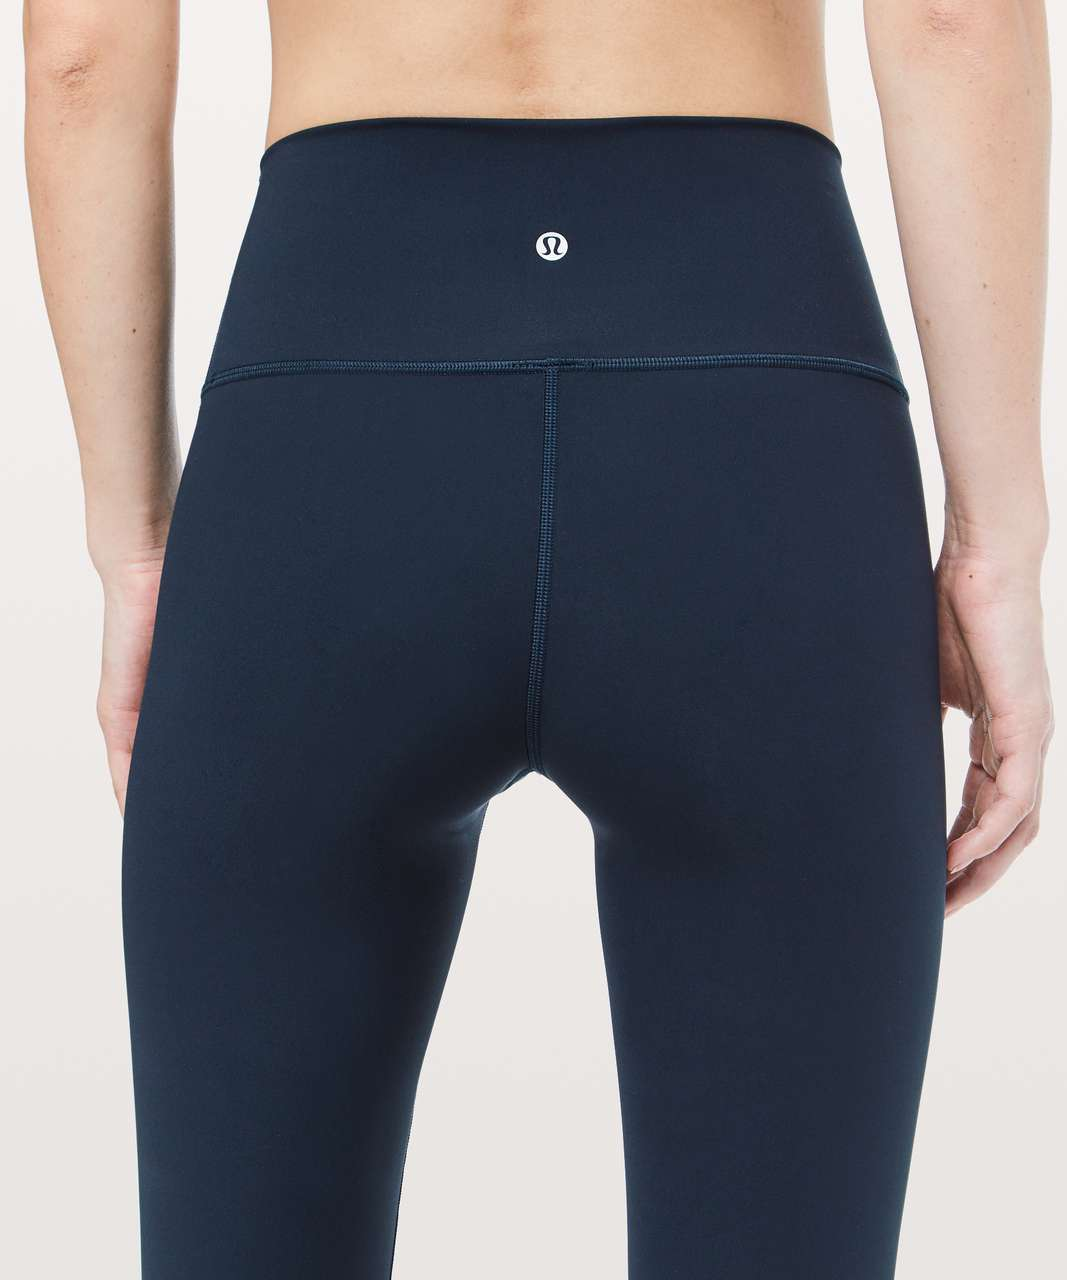 "Lululemon Wunder Under Crop (Hi-Rise) *Full-On Luxtreme 21"" - True Navy"